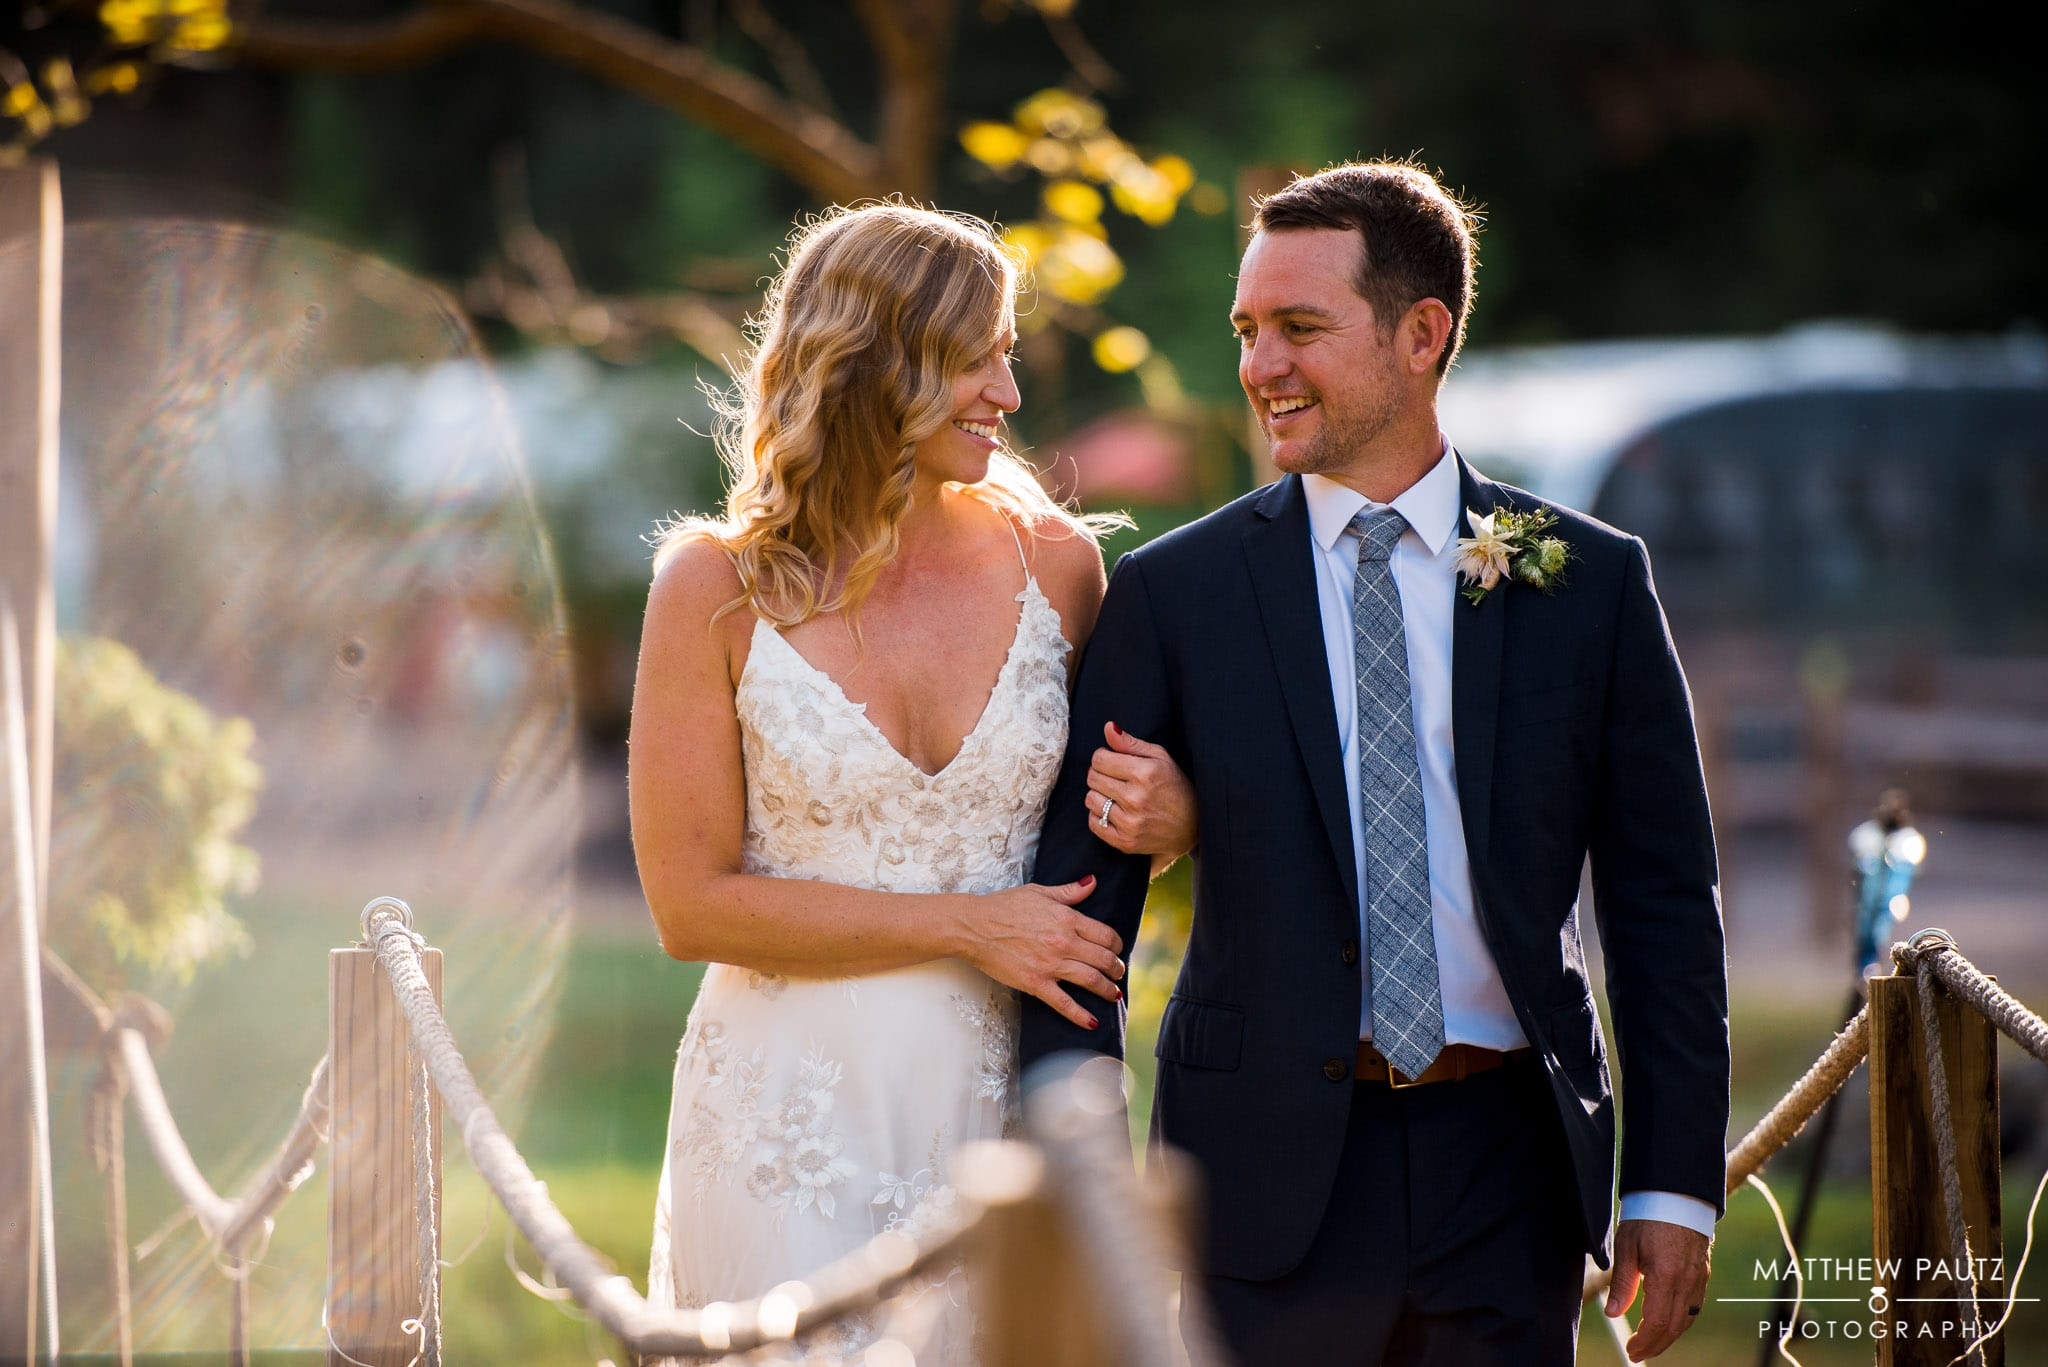 Outdoor wedding photos in Fall at Junebug Retro resort